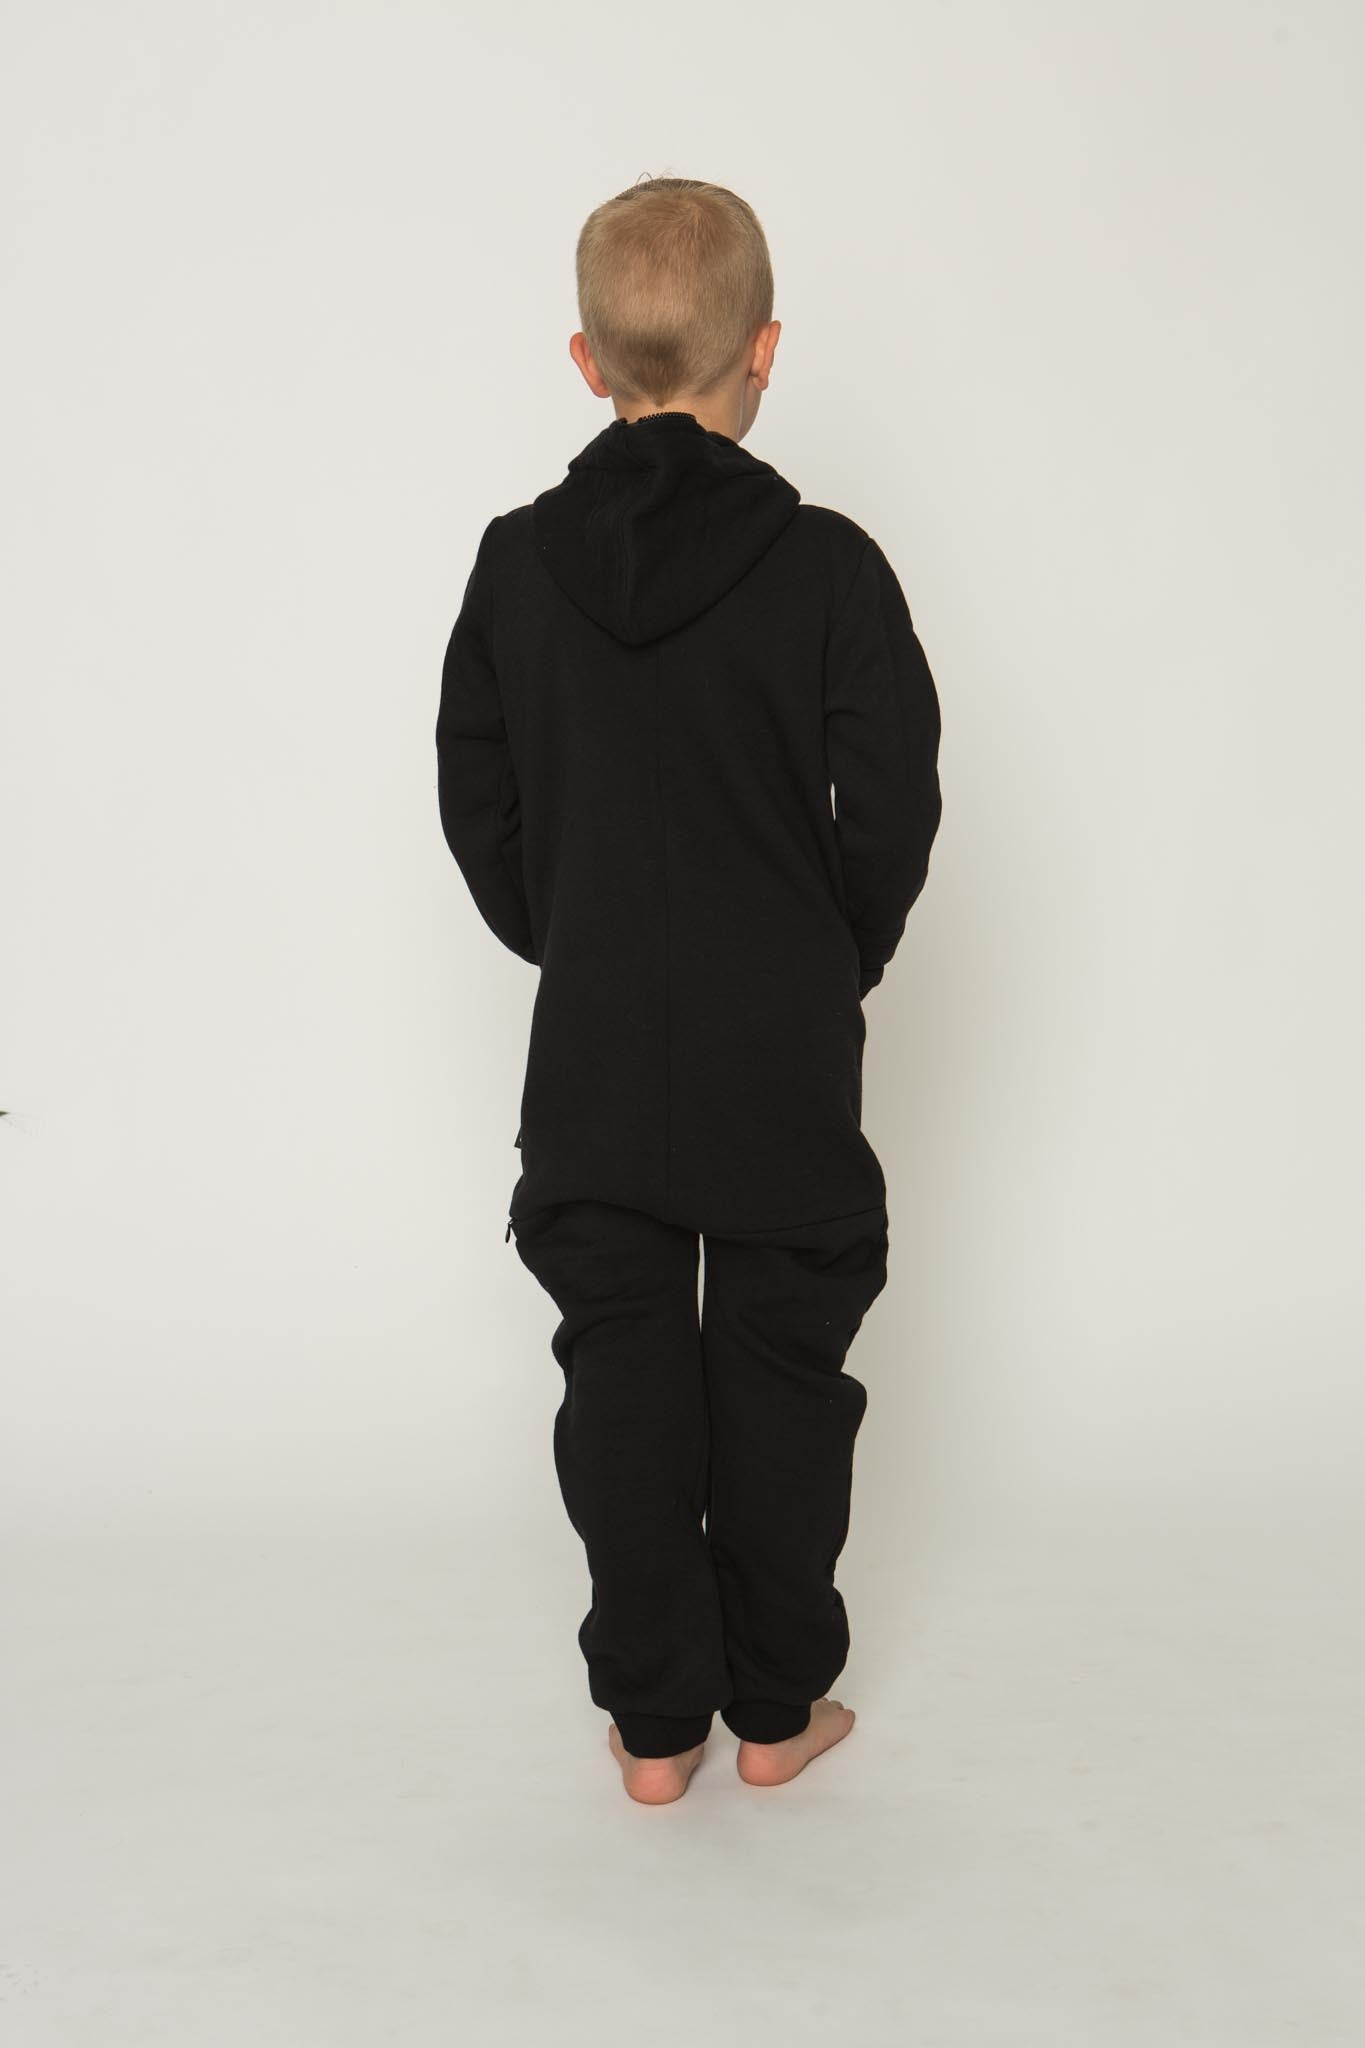 Sofa Killer black unisex kids onesie with zipper in the back